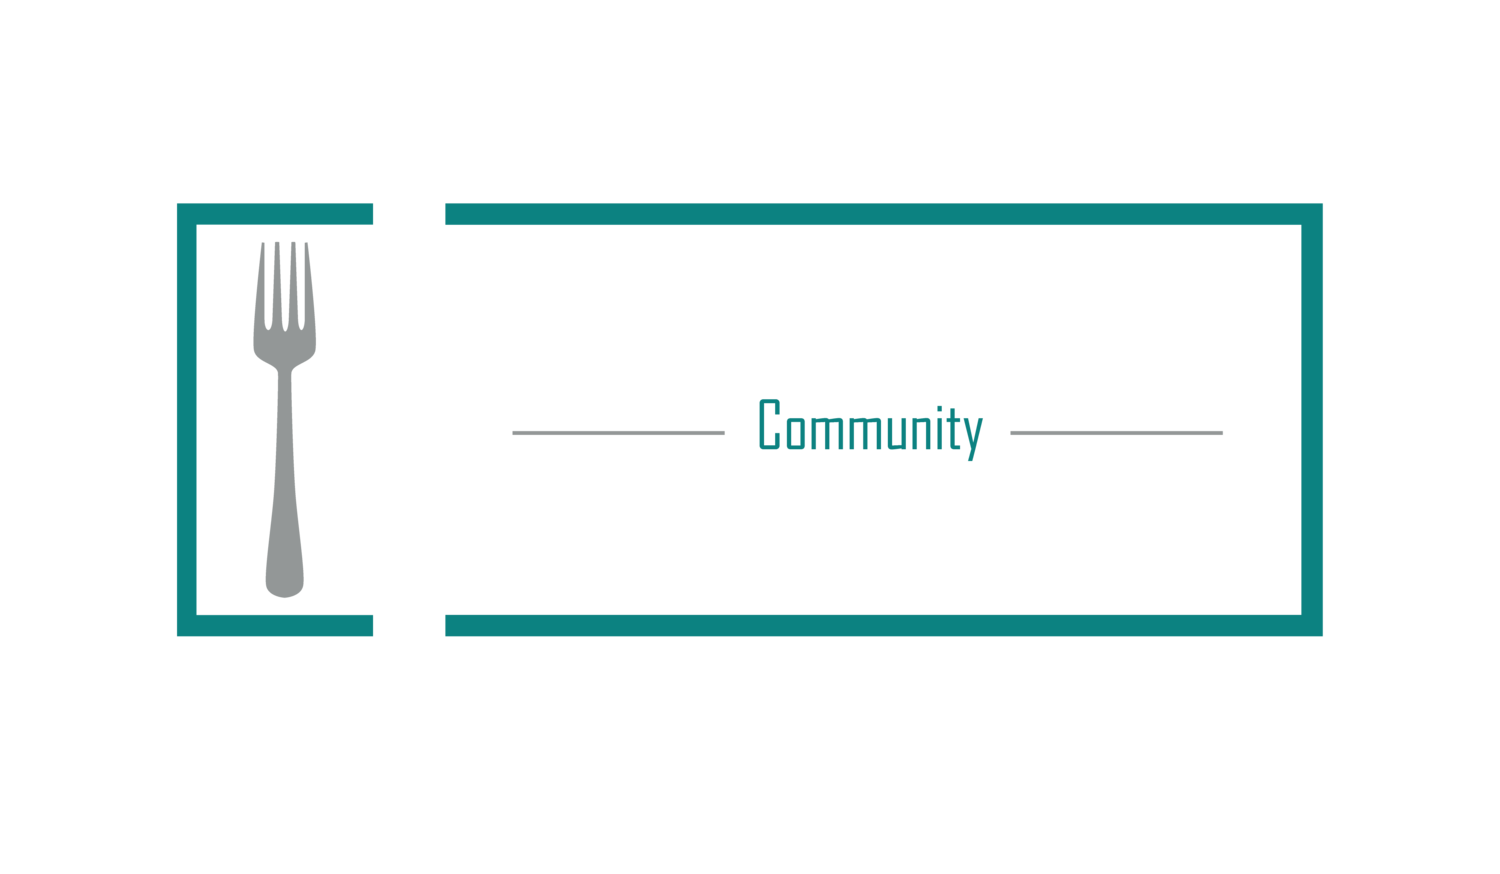 Fork Real Community Café